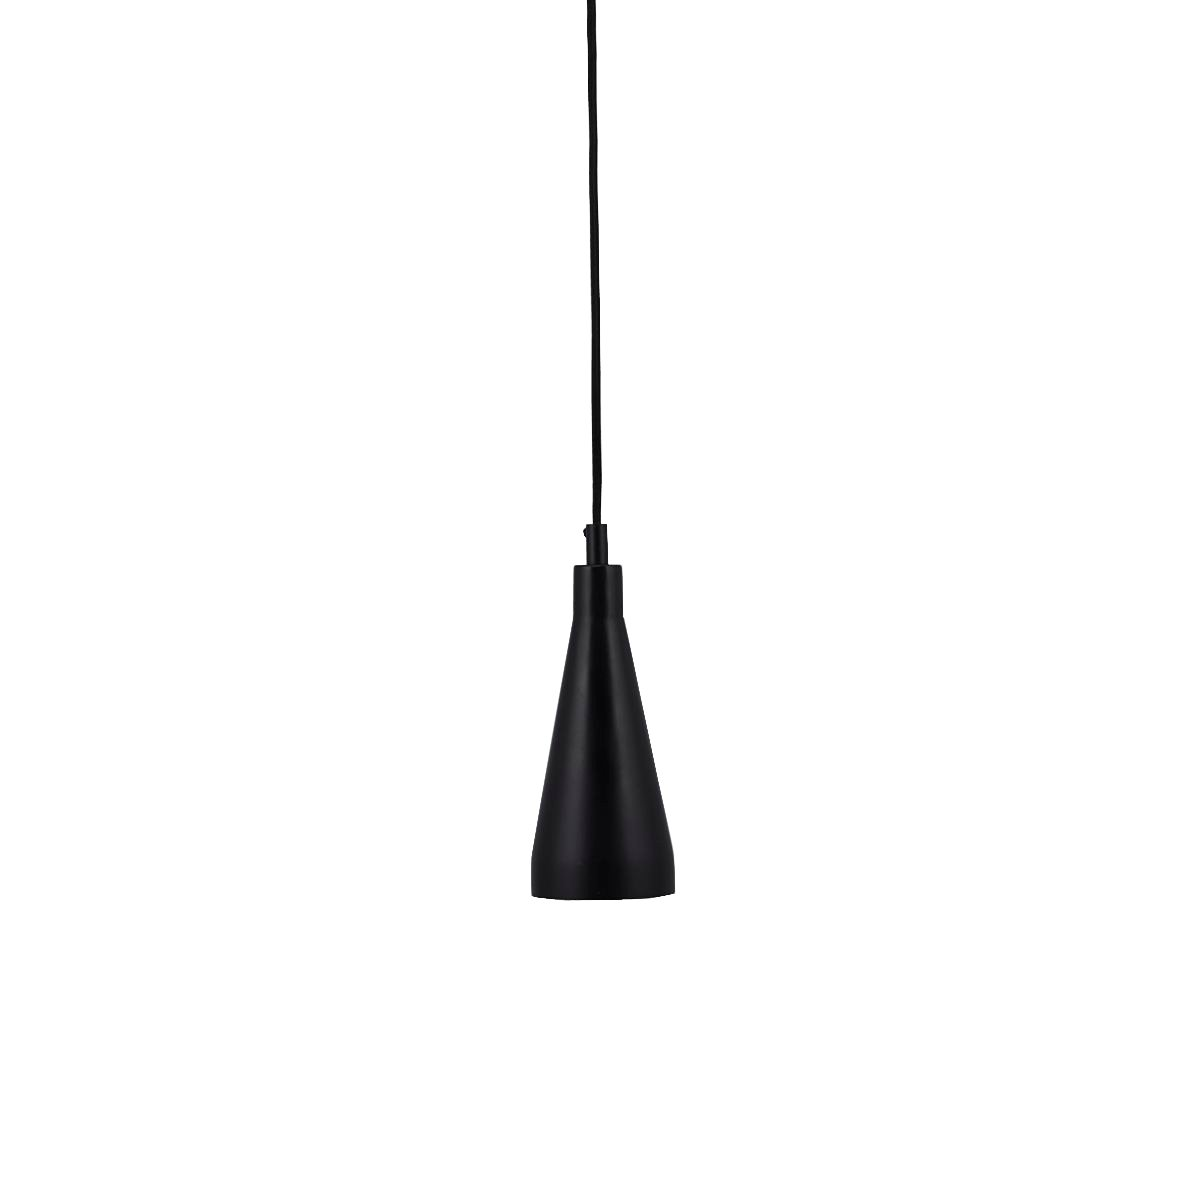 House Doctor - Jammu Lamp Small - Black (211280202/211280202)